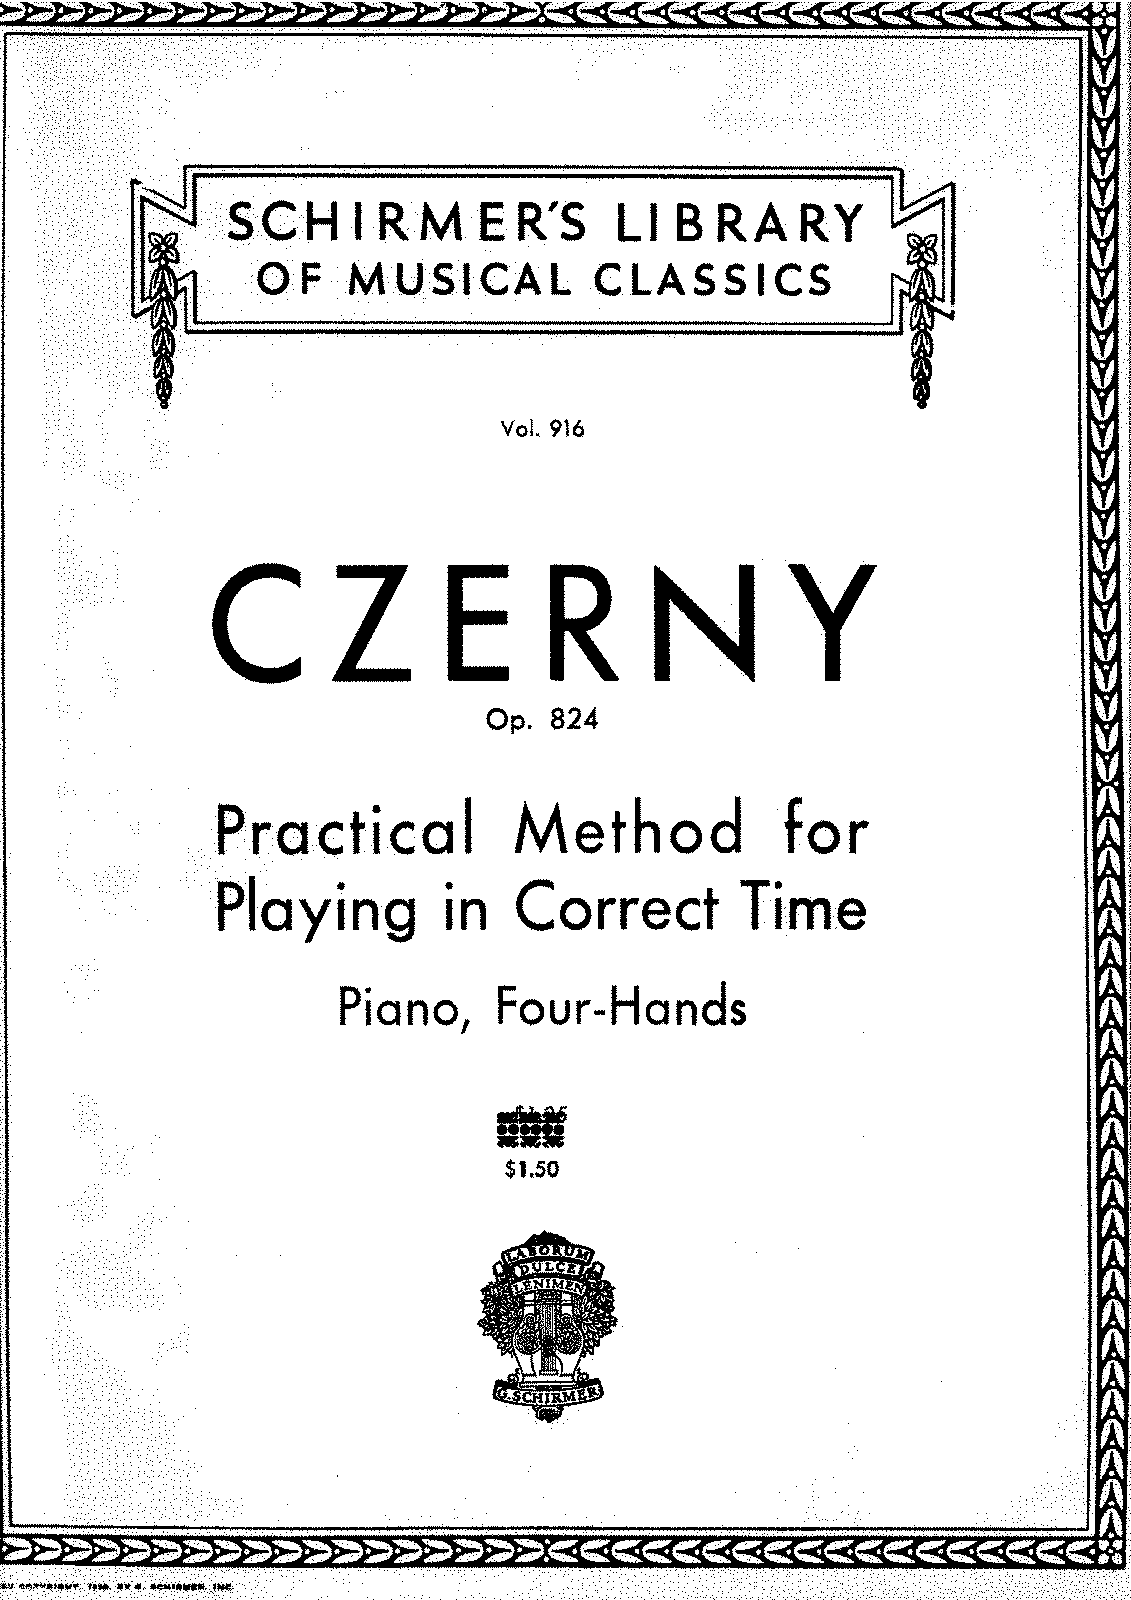 PMLP580823-Czerny - 824 Practical Method for Playing in Correct Time.pdf